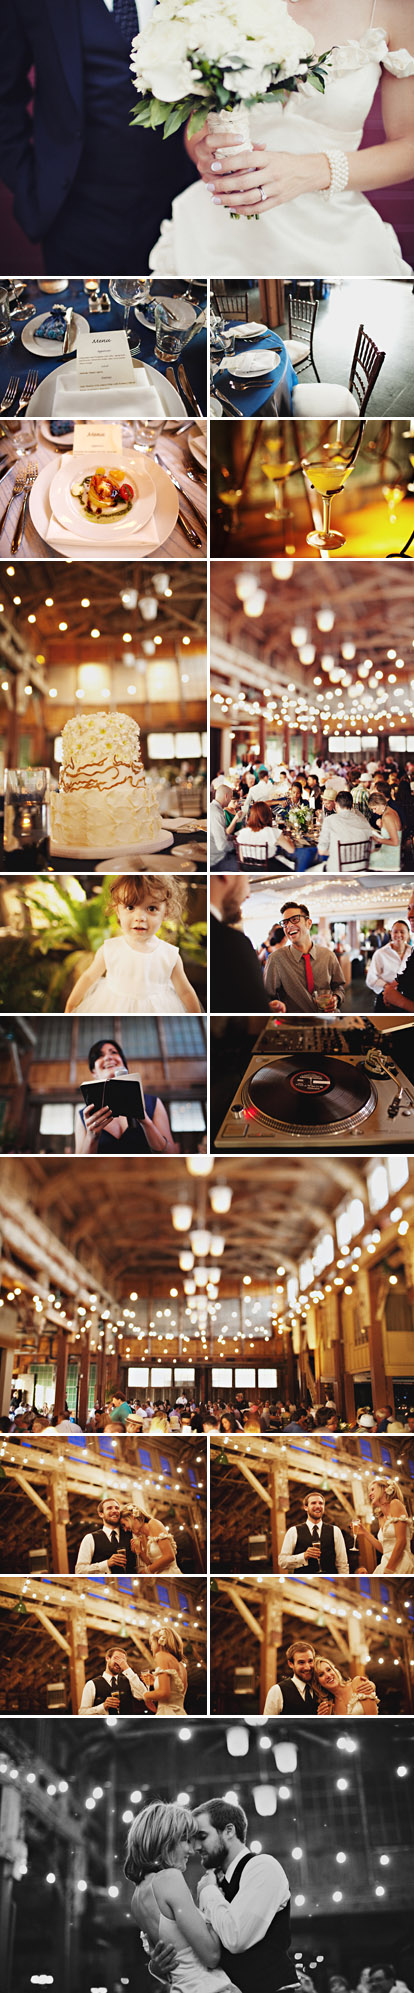 Fun, modern, urban Seattle wedding reception at Sodo Park by Herban Feast, blue, white and green wedding color palette, images by Sean Flanigan